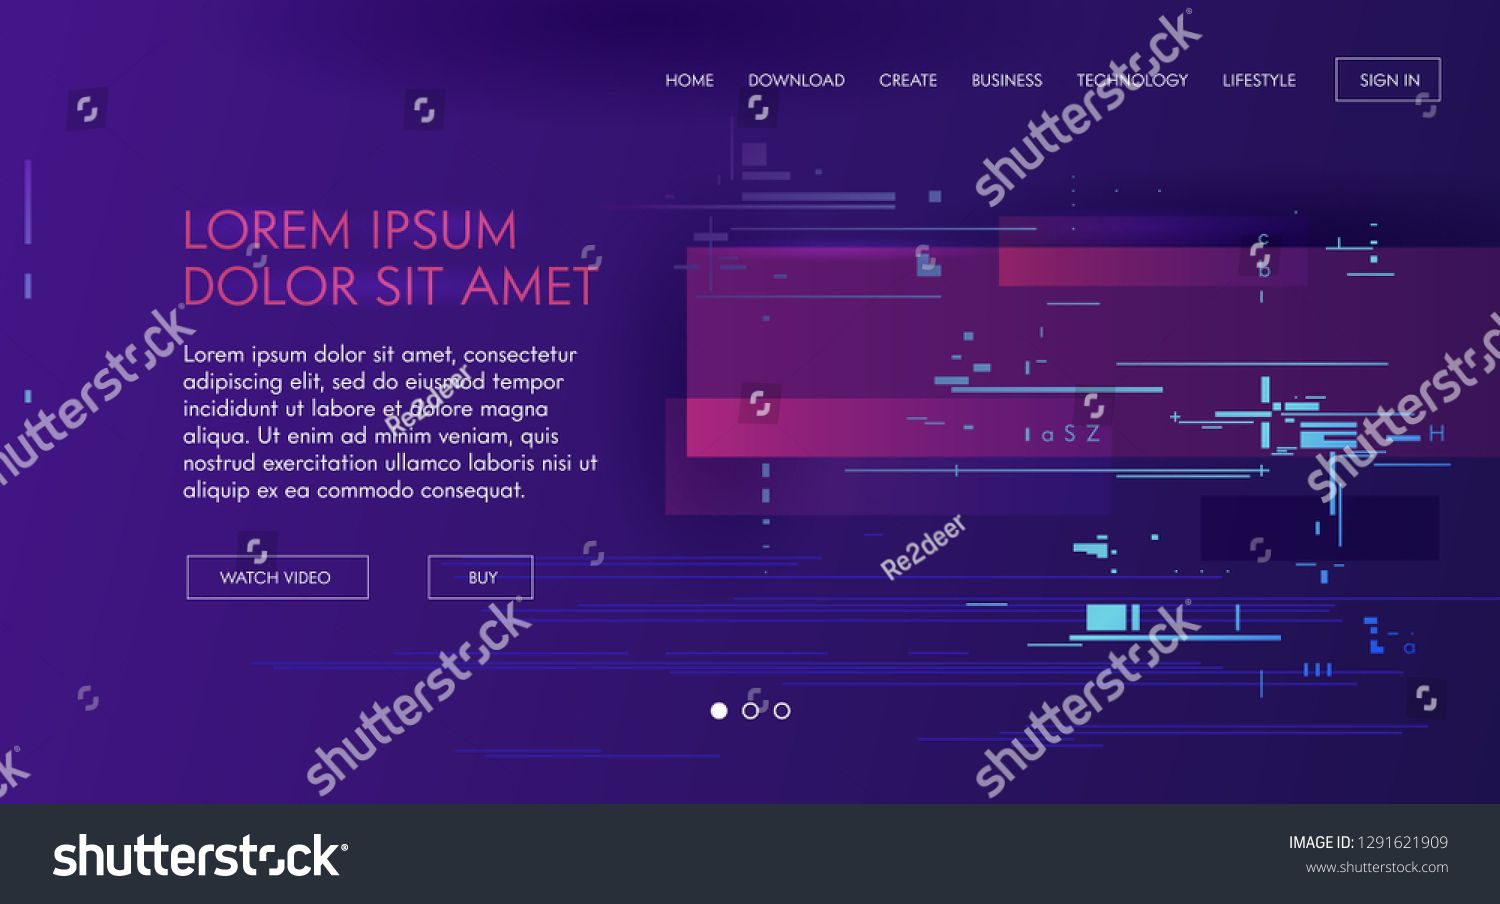 Landing website page design. Vector colorful glitch dynamic effect digital art for your screen site. Interface purple concept graphic art #Ad , #sponsored, #colorful#Vector#dynamic#glitch